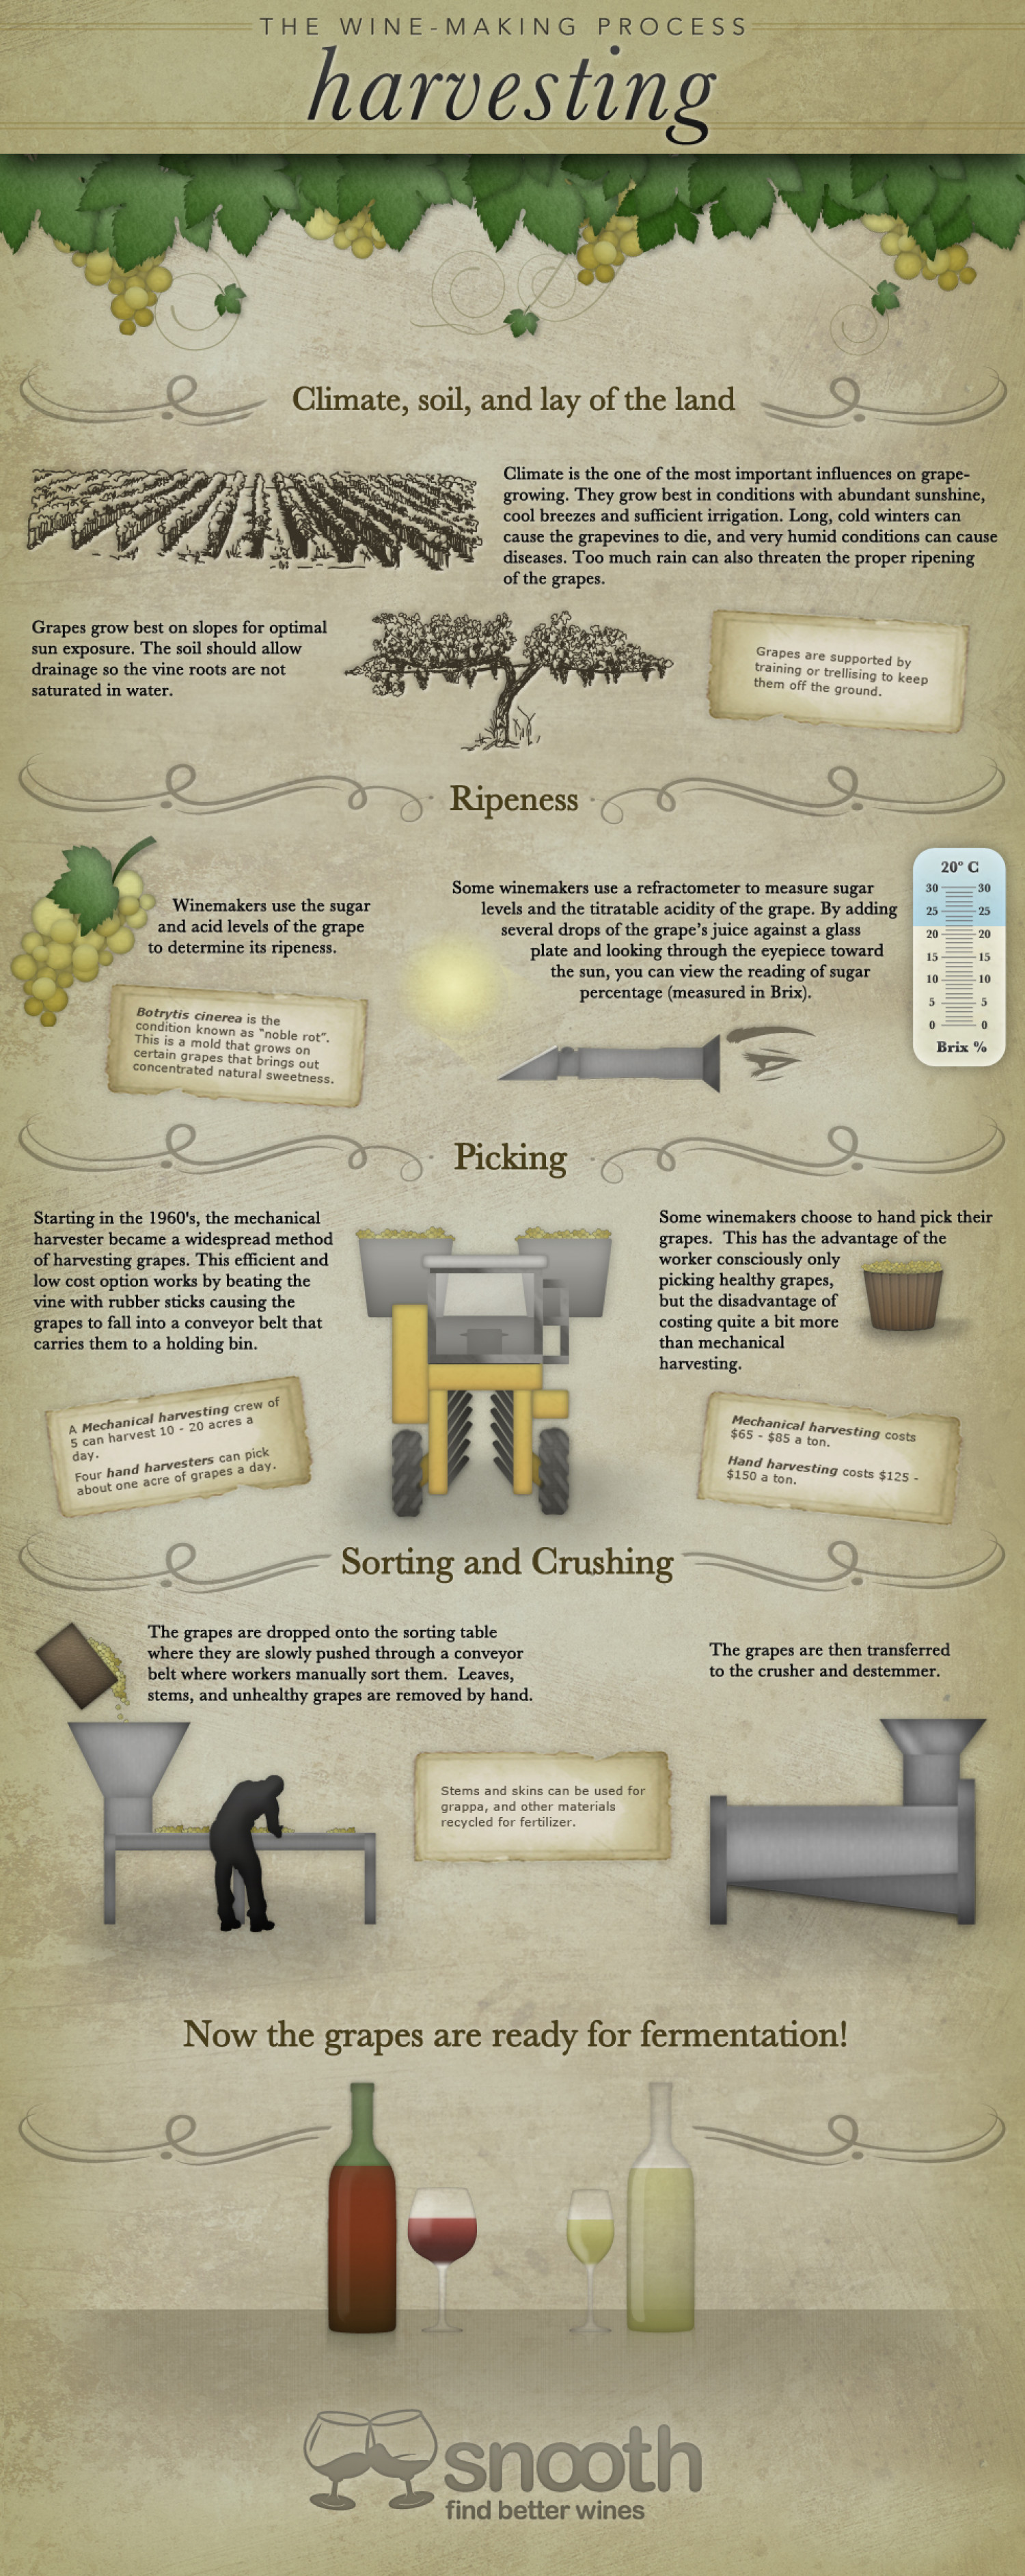 The Wine-Making Process: Harvesting Infographic